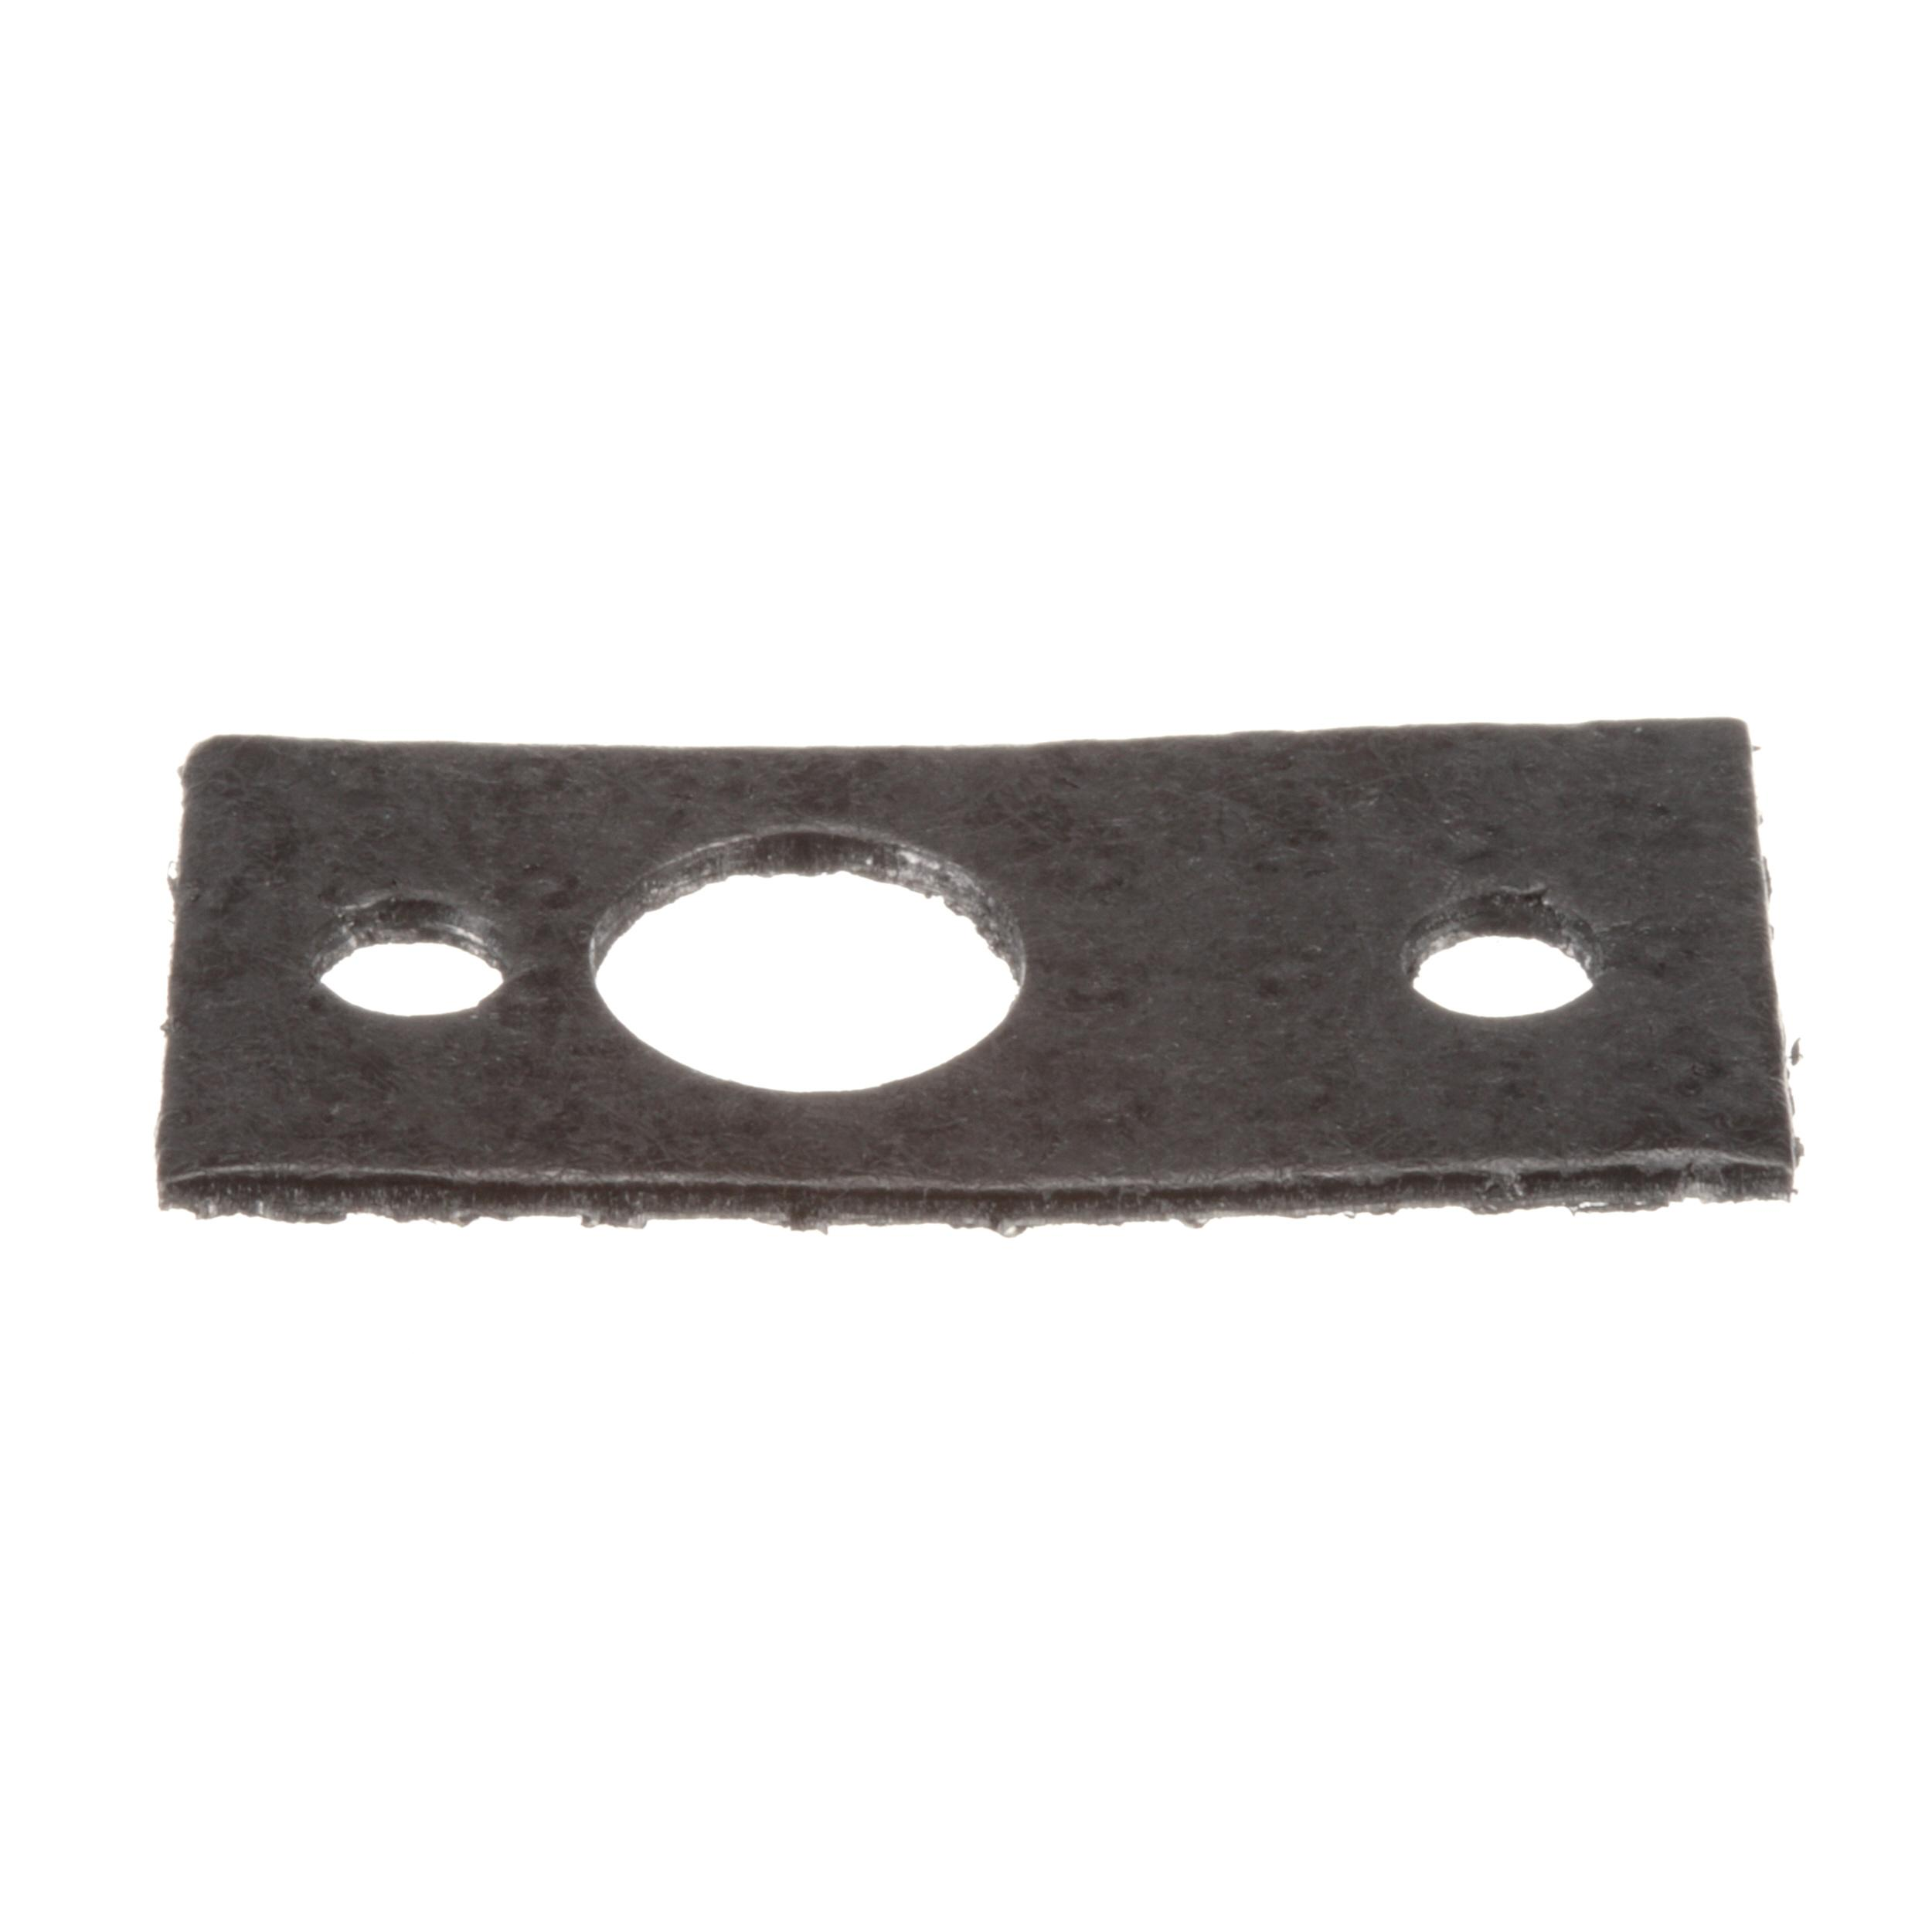 ALTO-SHAAM GASKET, IGNITION COMPONENTCTC/CTP